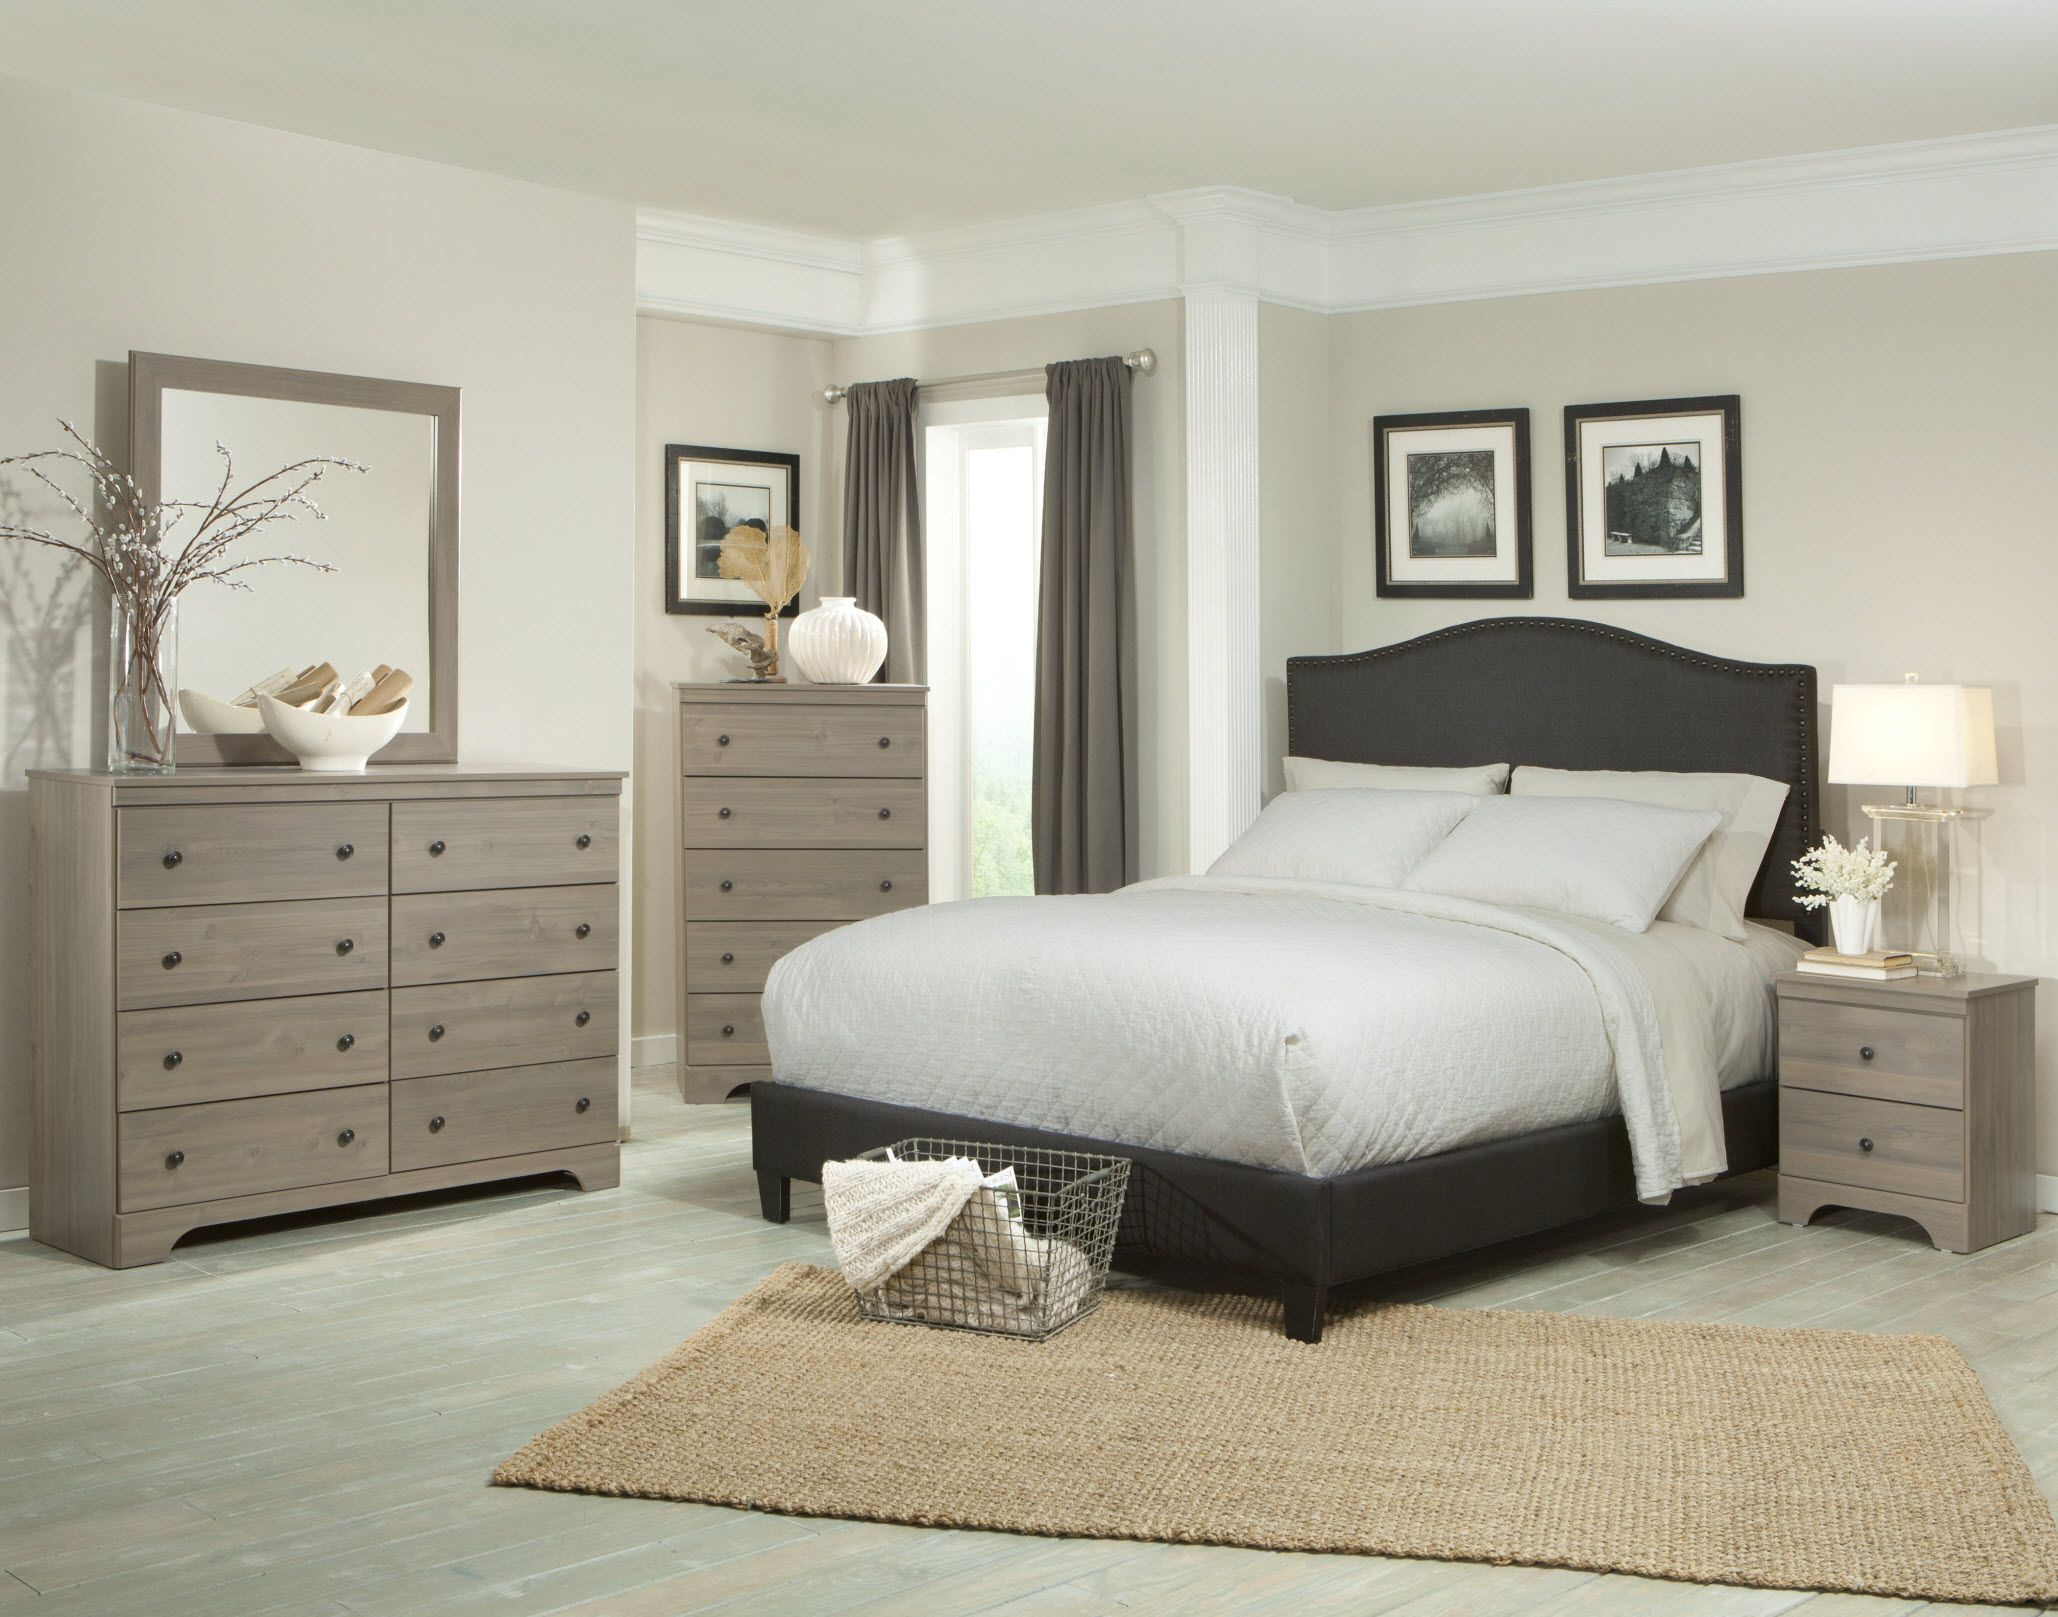 Ornate Wooden Ikea Bedroom Transitional Furniture Sets With Queen Platform Beds As Well As Dresser Vanities